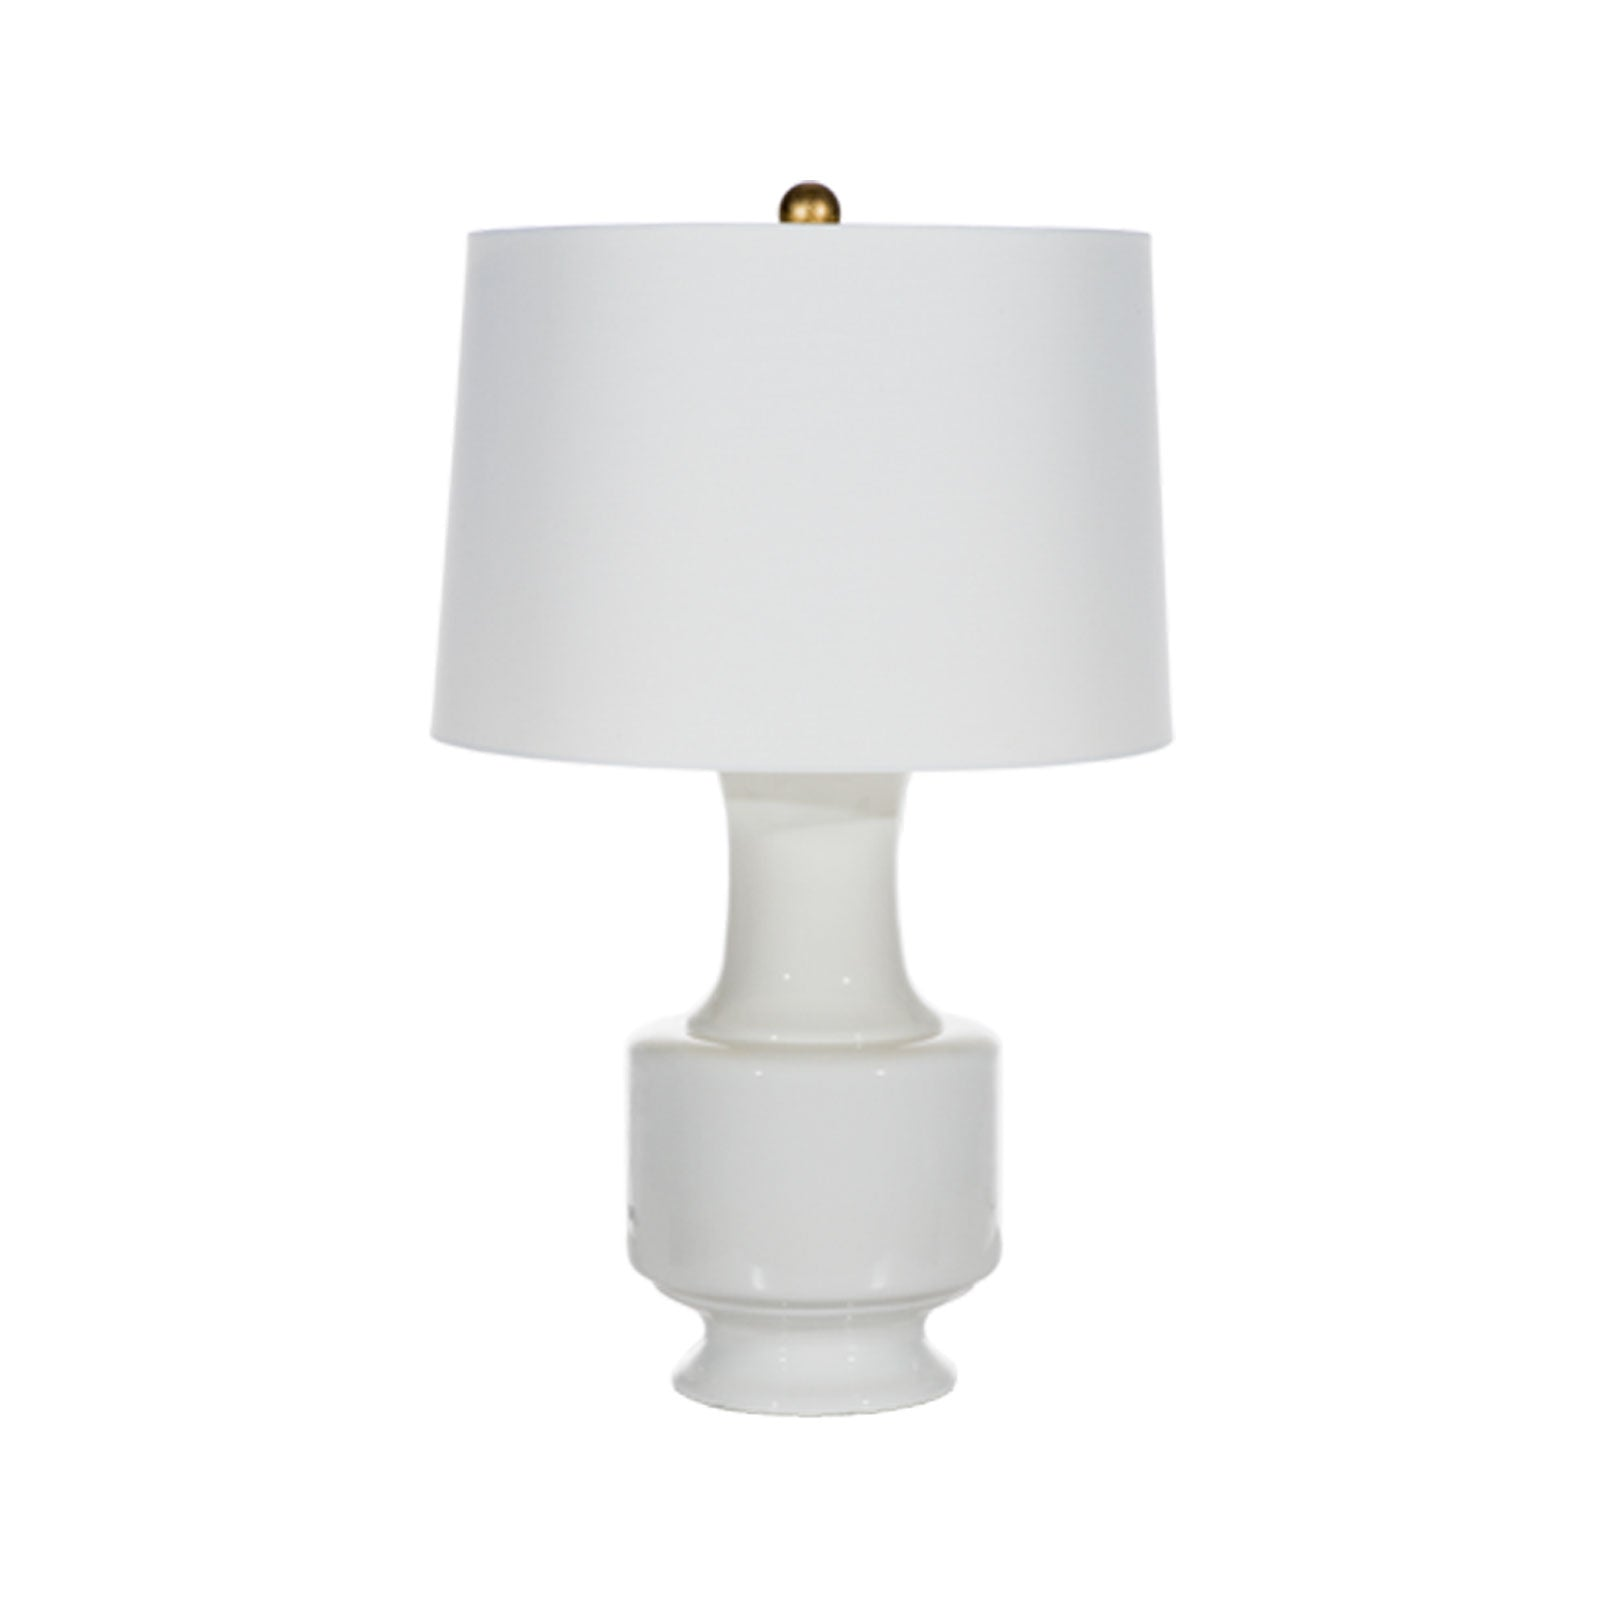 Megan Lamp in White